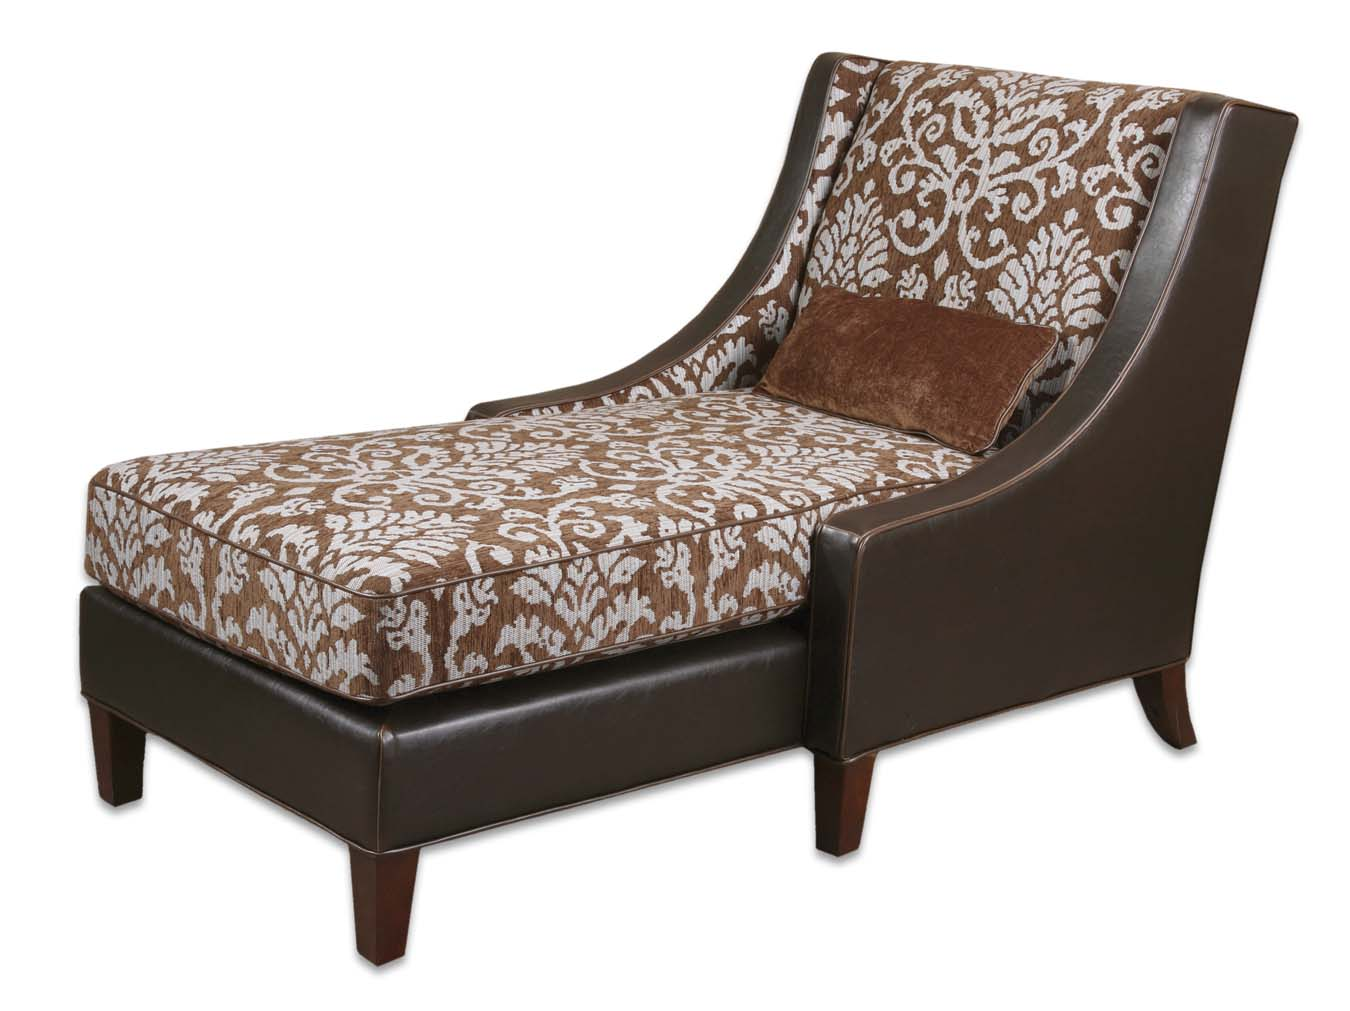 Accent chaise the living room for Accent chaise lounge